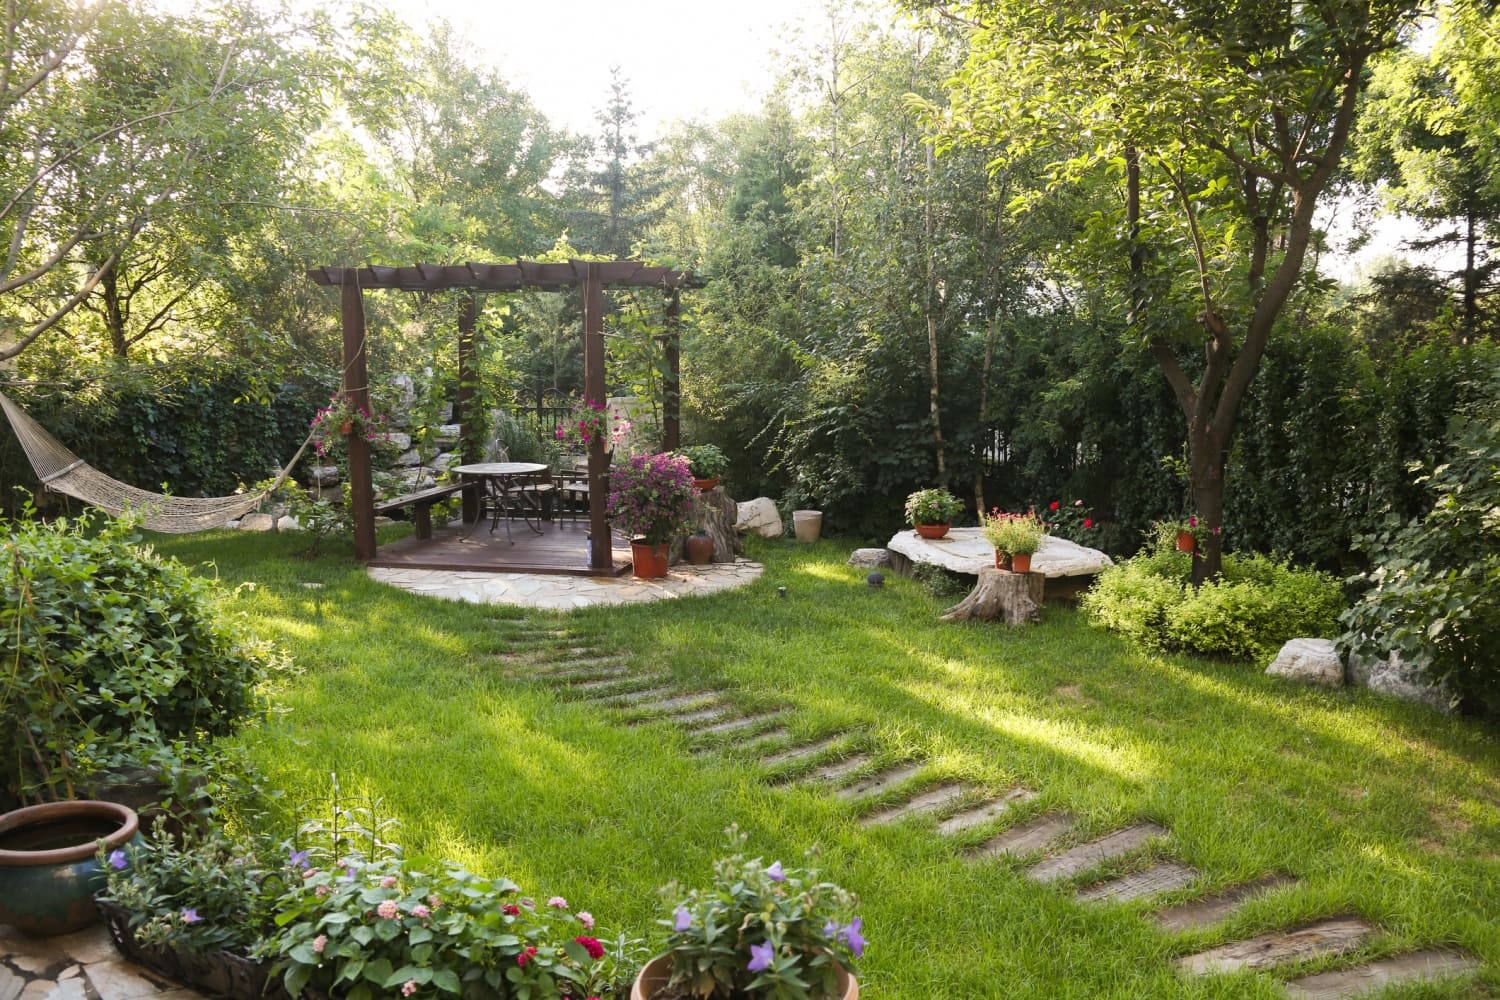 6 Things Making Your Yard Feel Smaller Than It Actually Is, According to Real Estate Experts